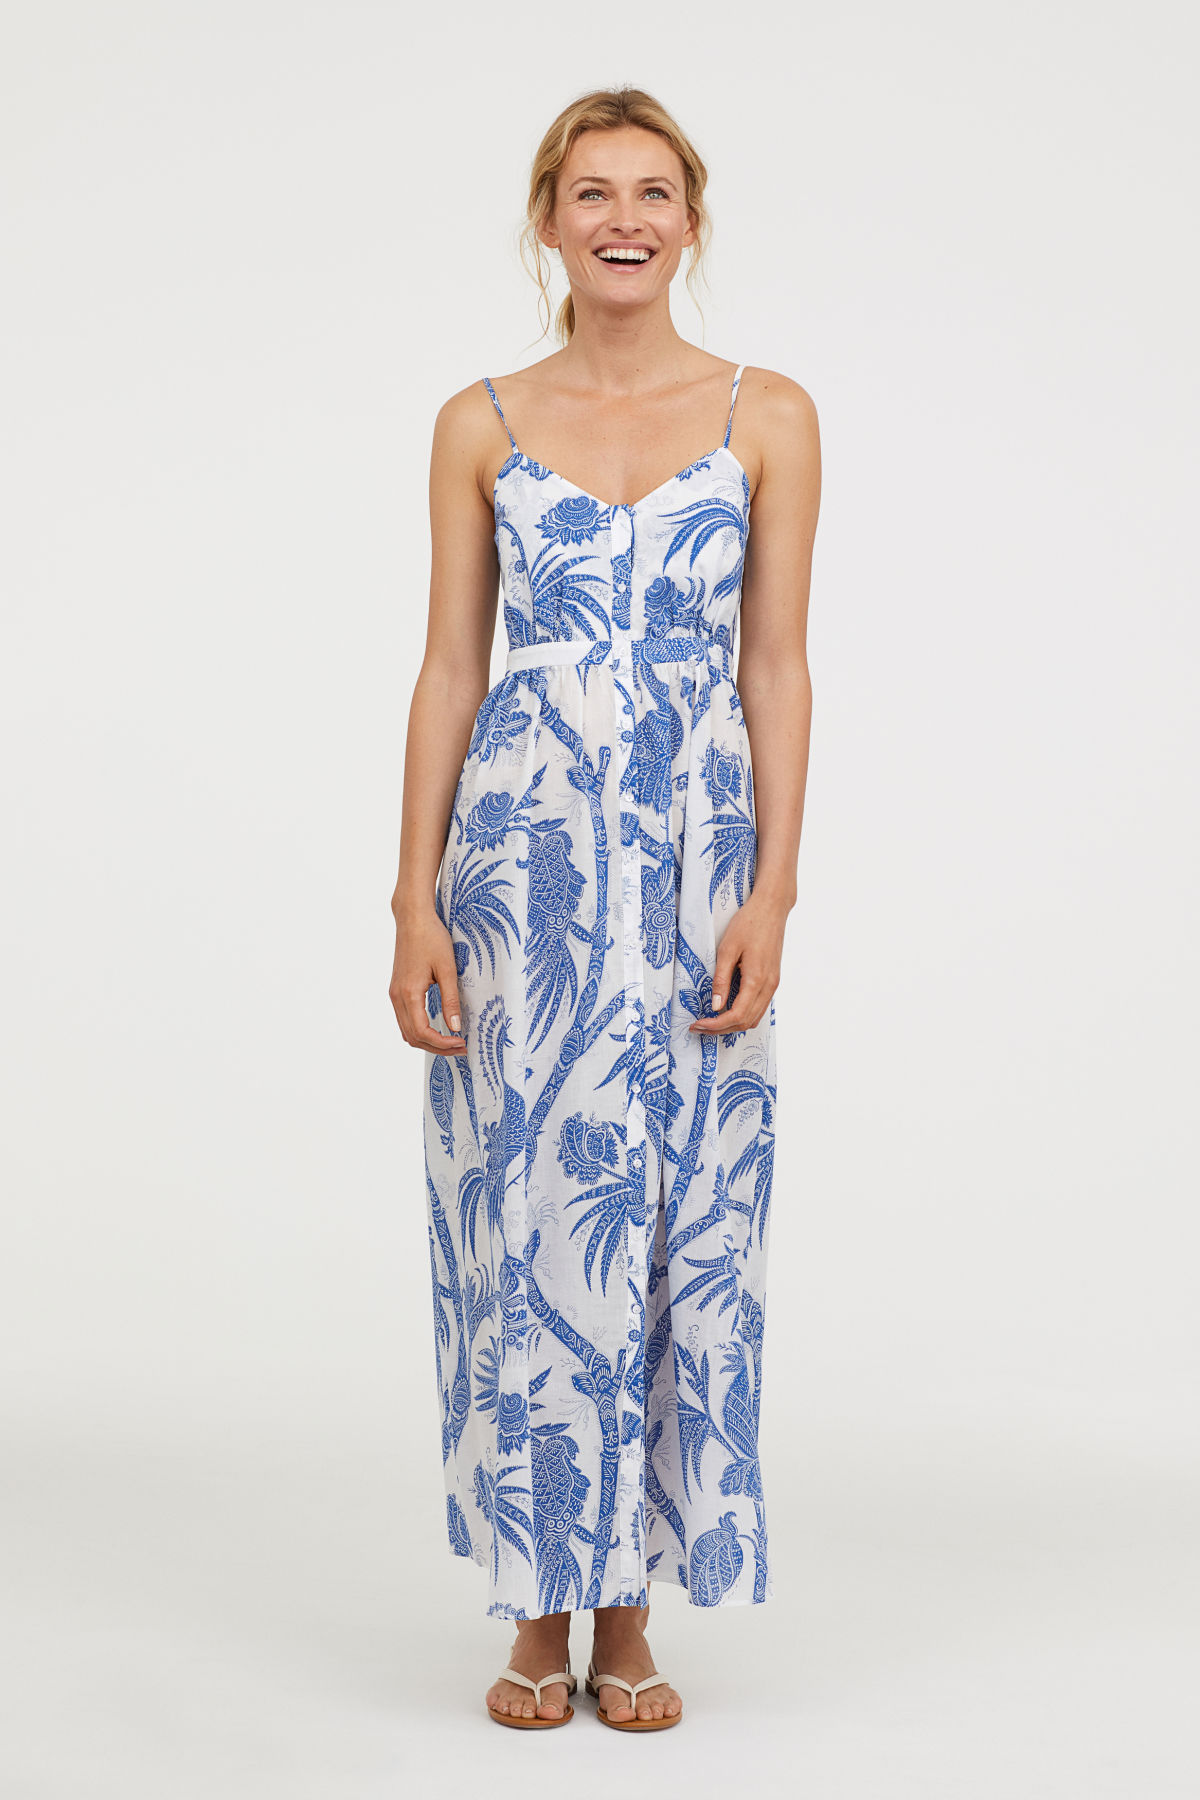 Blue and White Cotton Floral Maxi Dress